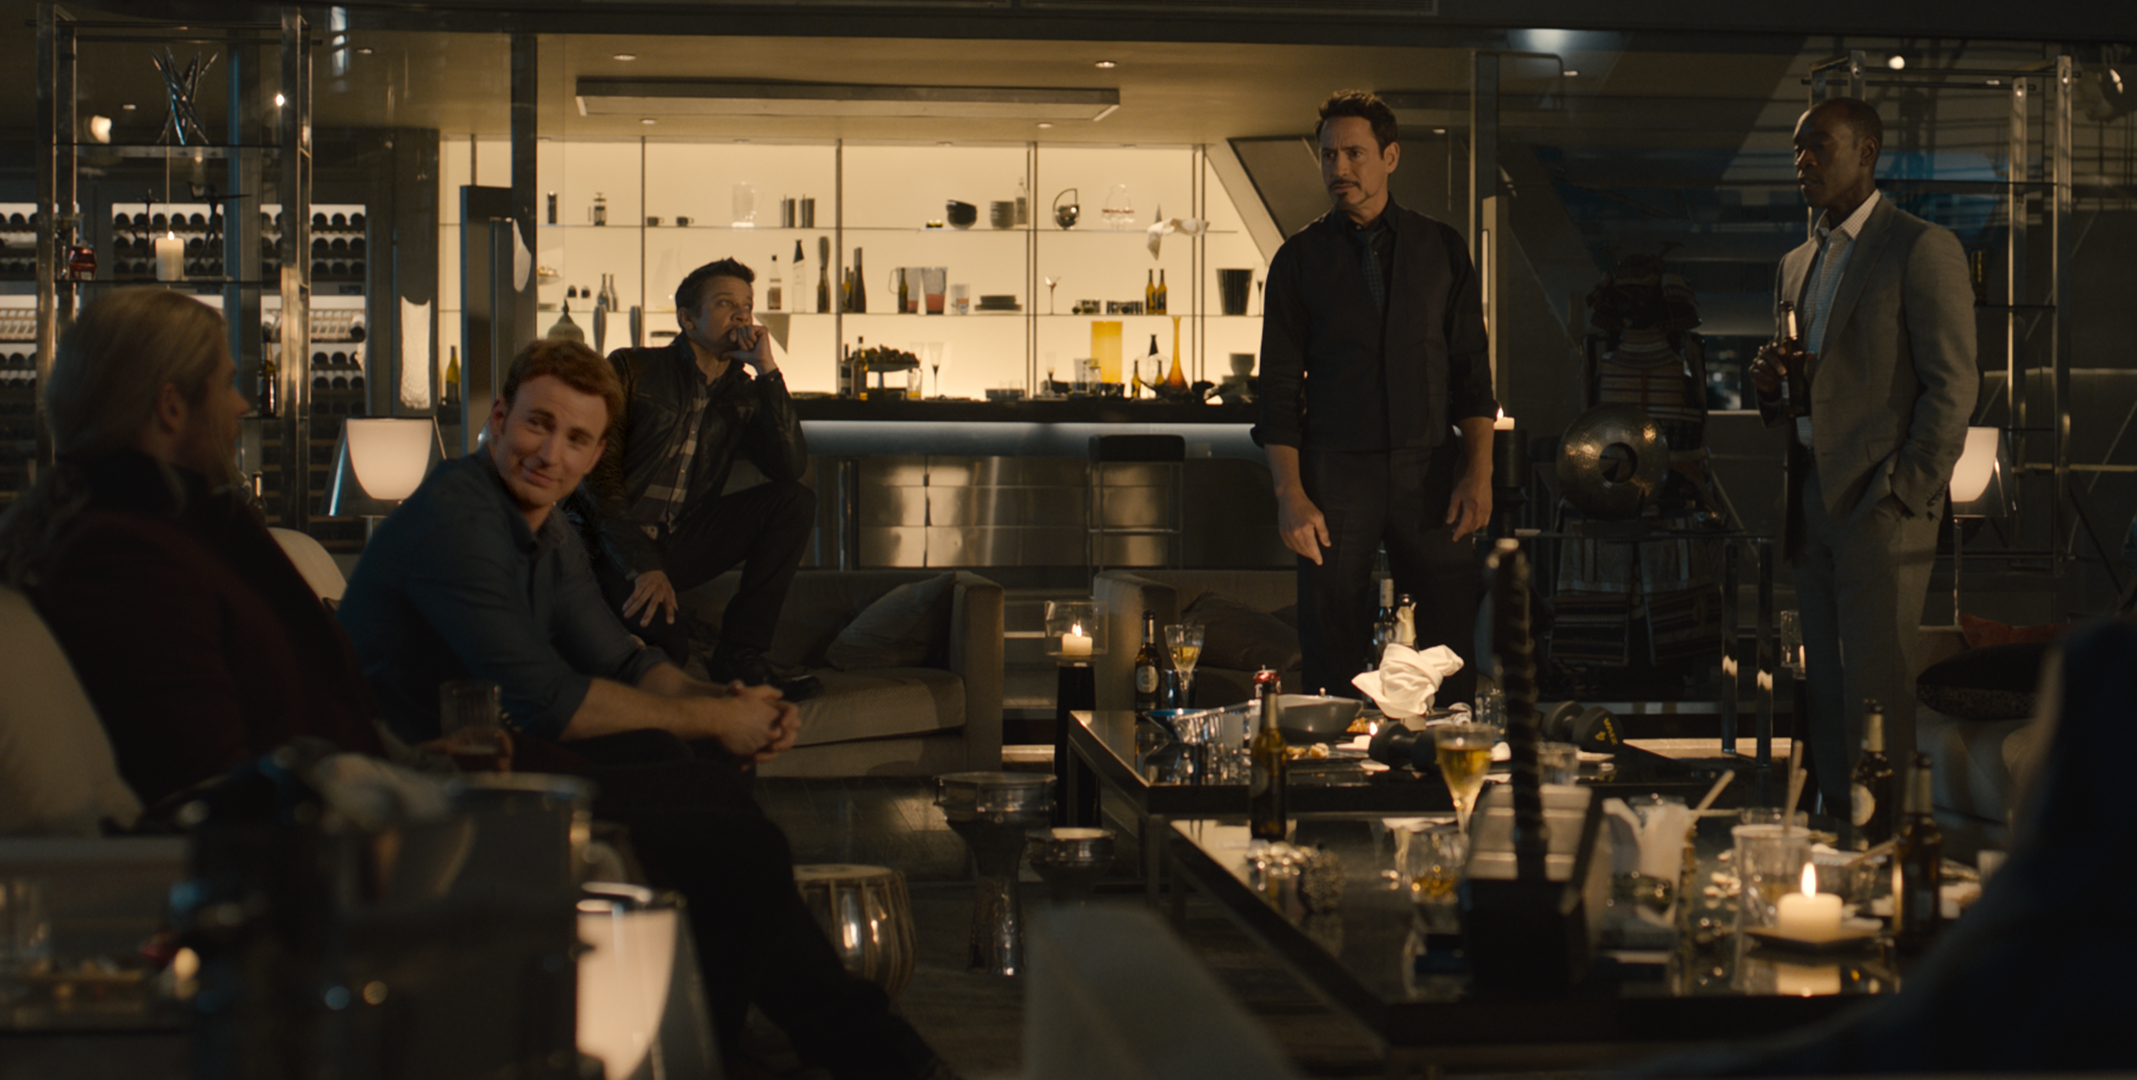 Avengers Age Of Ultron Film And Furniture